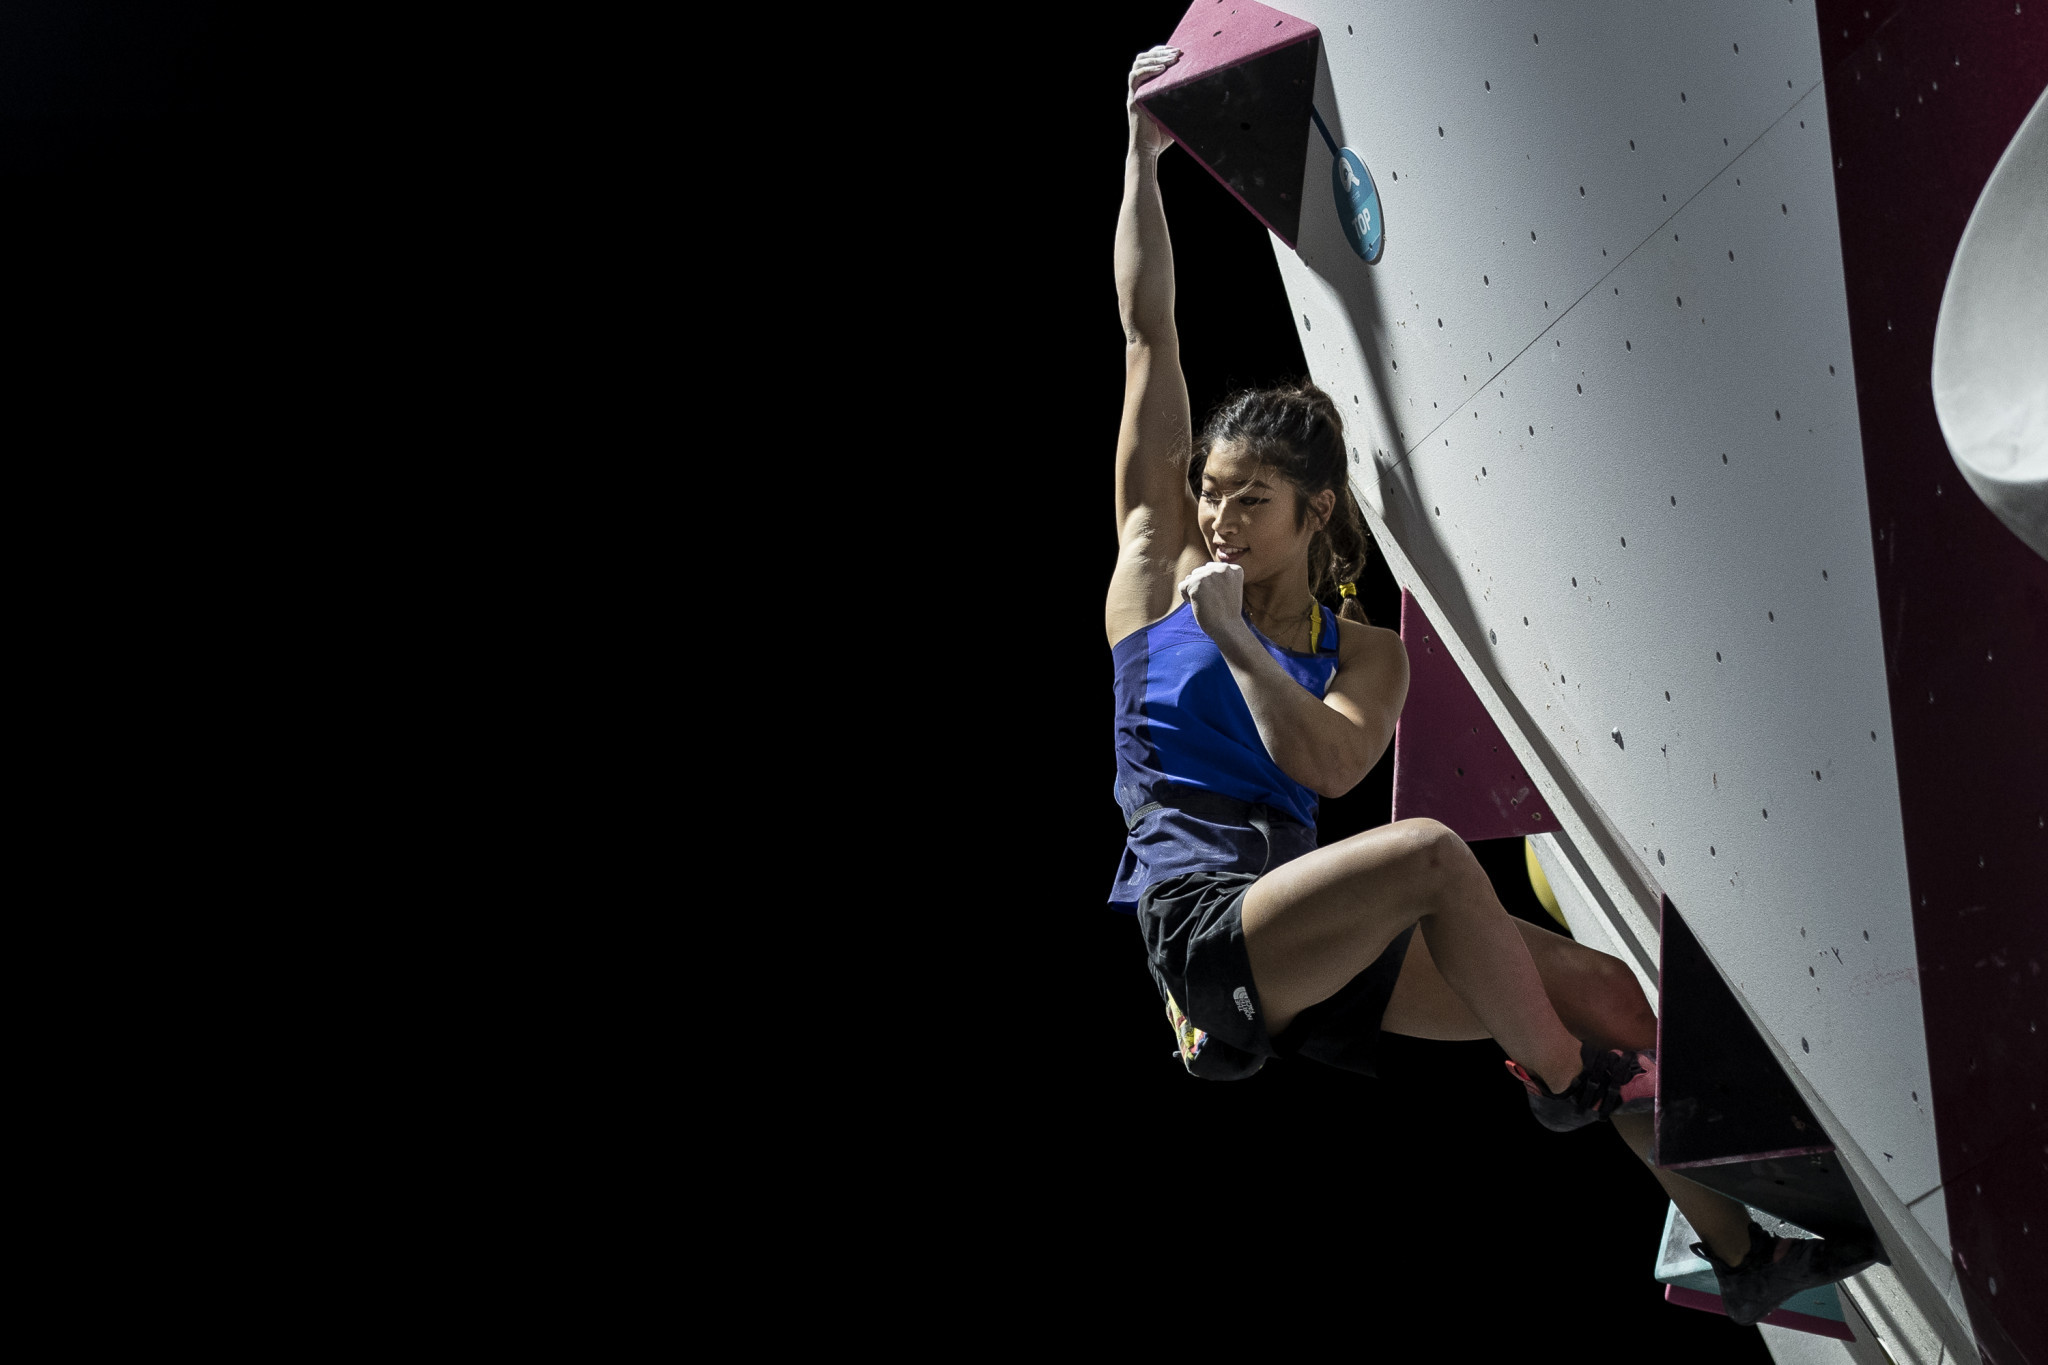 Miho Nonaka made the bouldering look easy en-route to gold ©ANOC